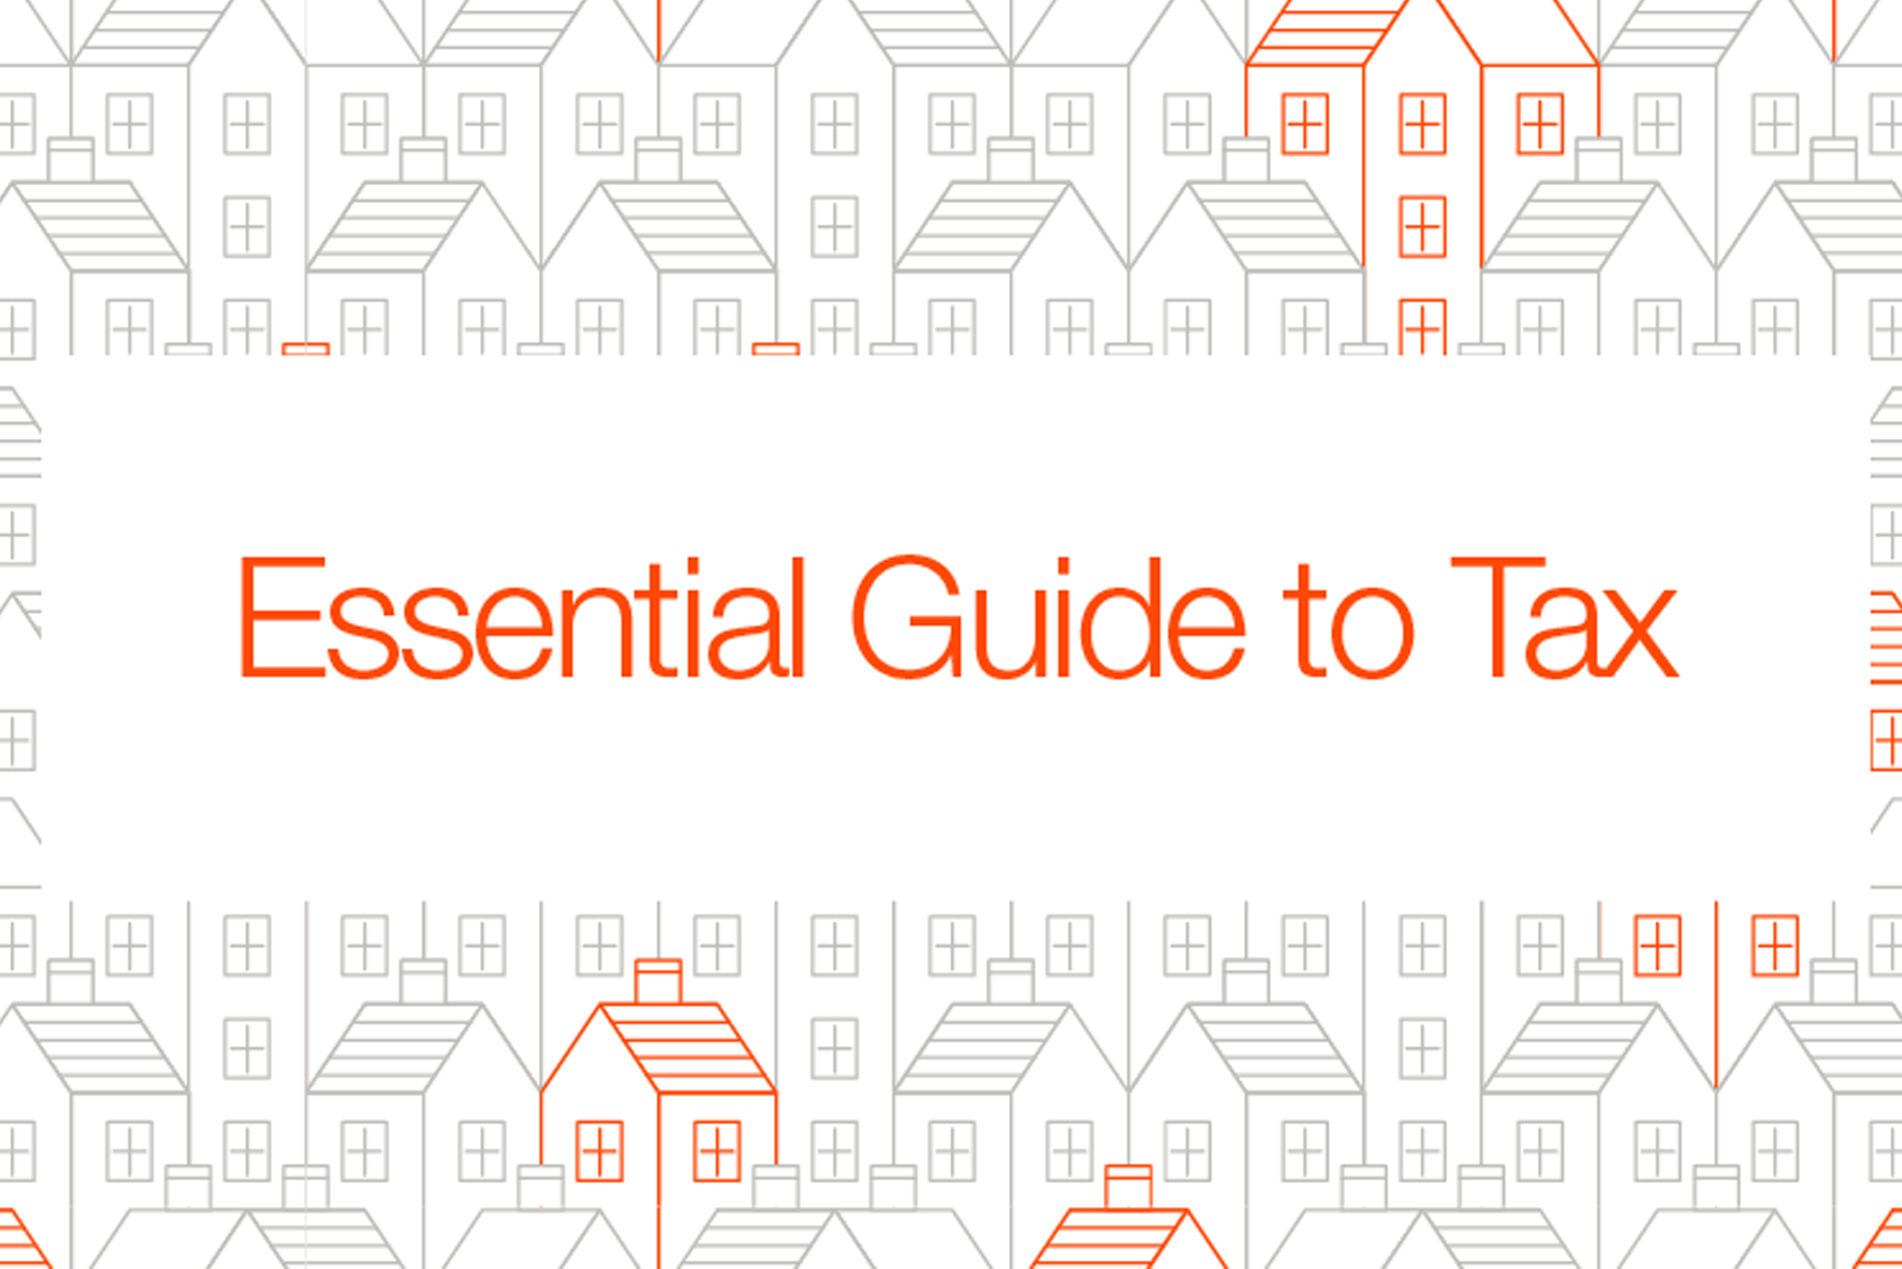 2019 Tax Guide for Landlords